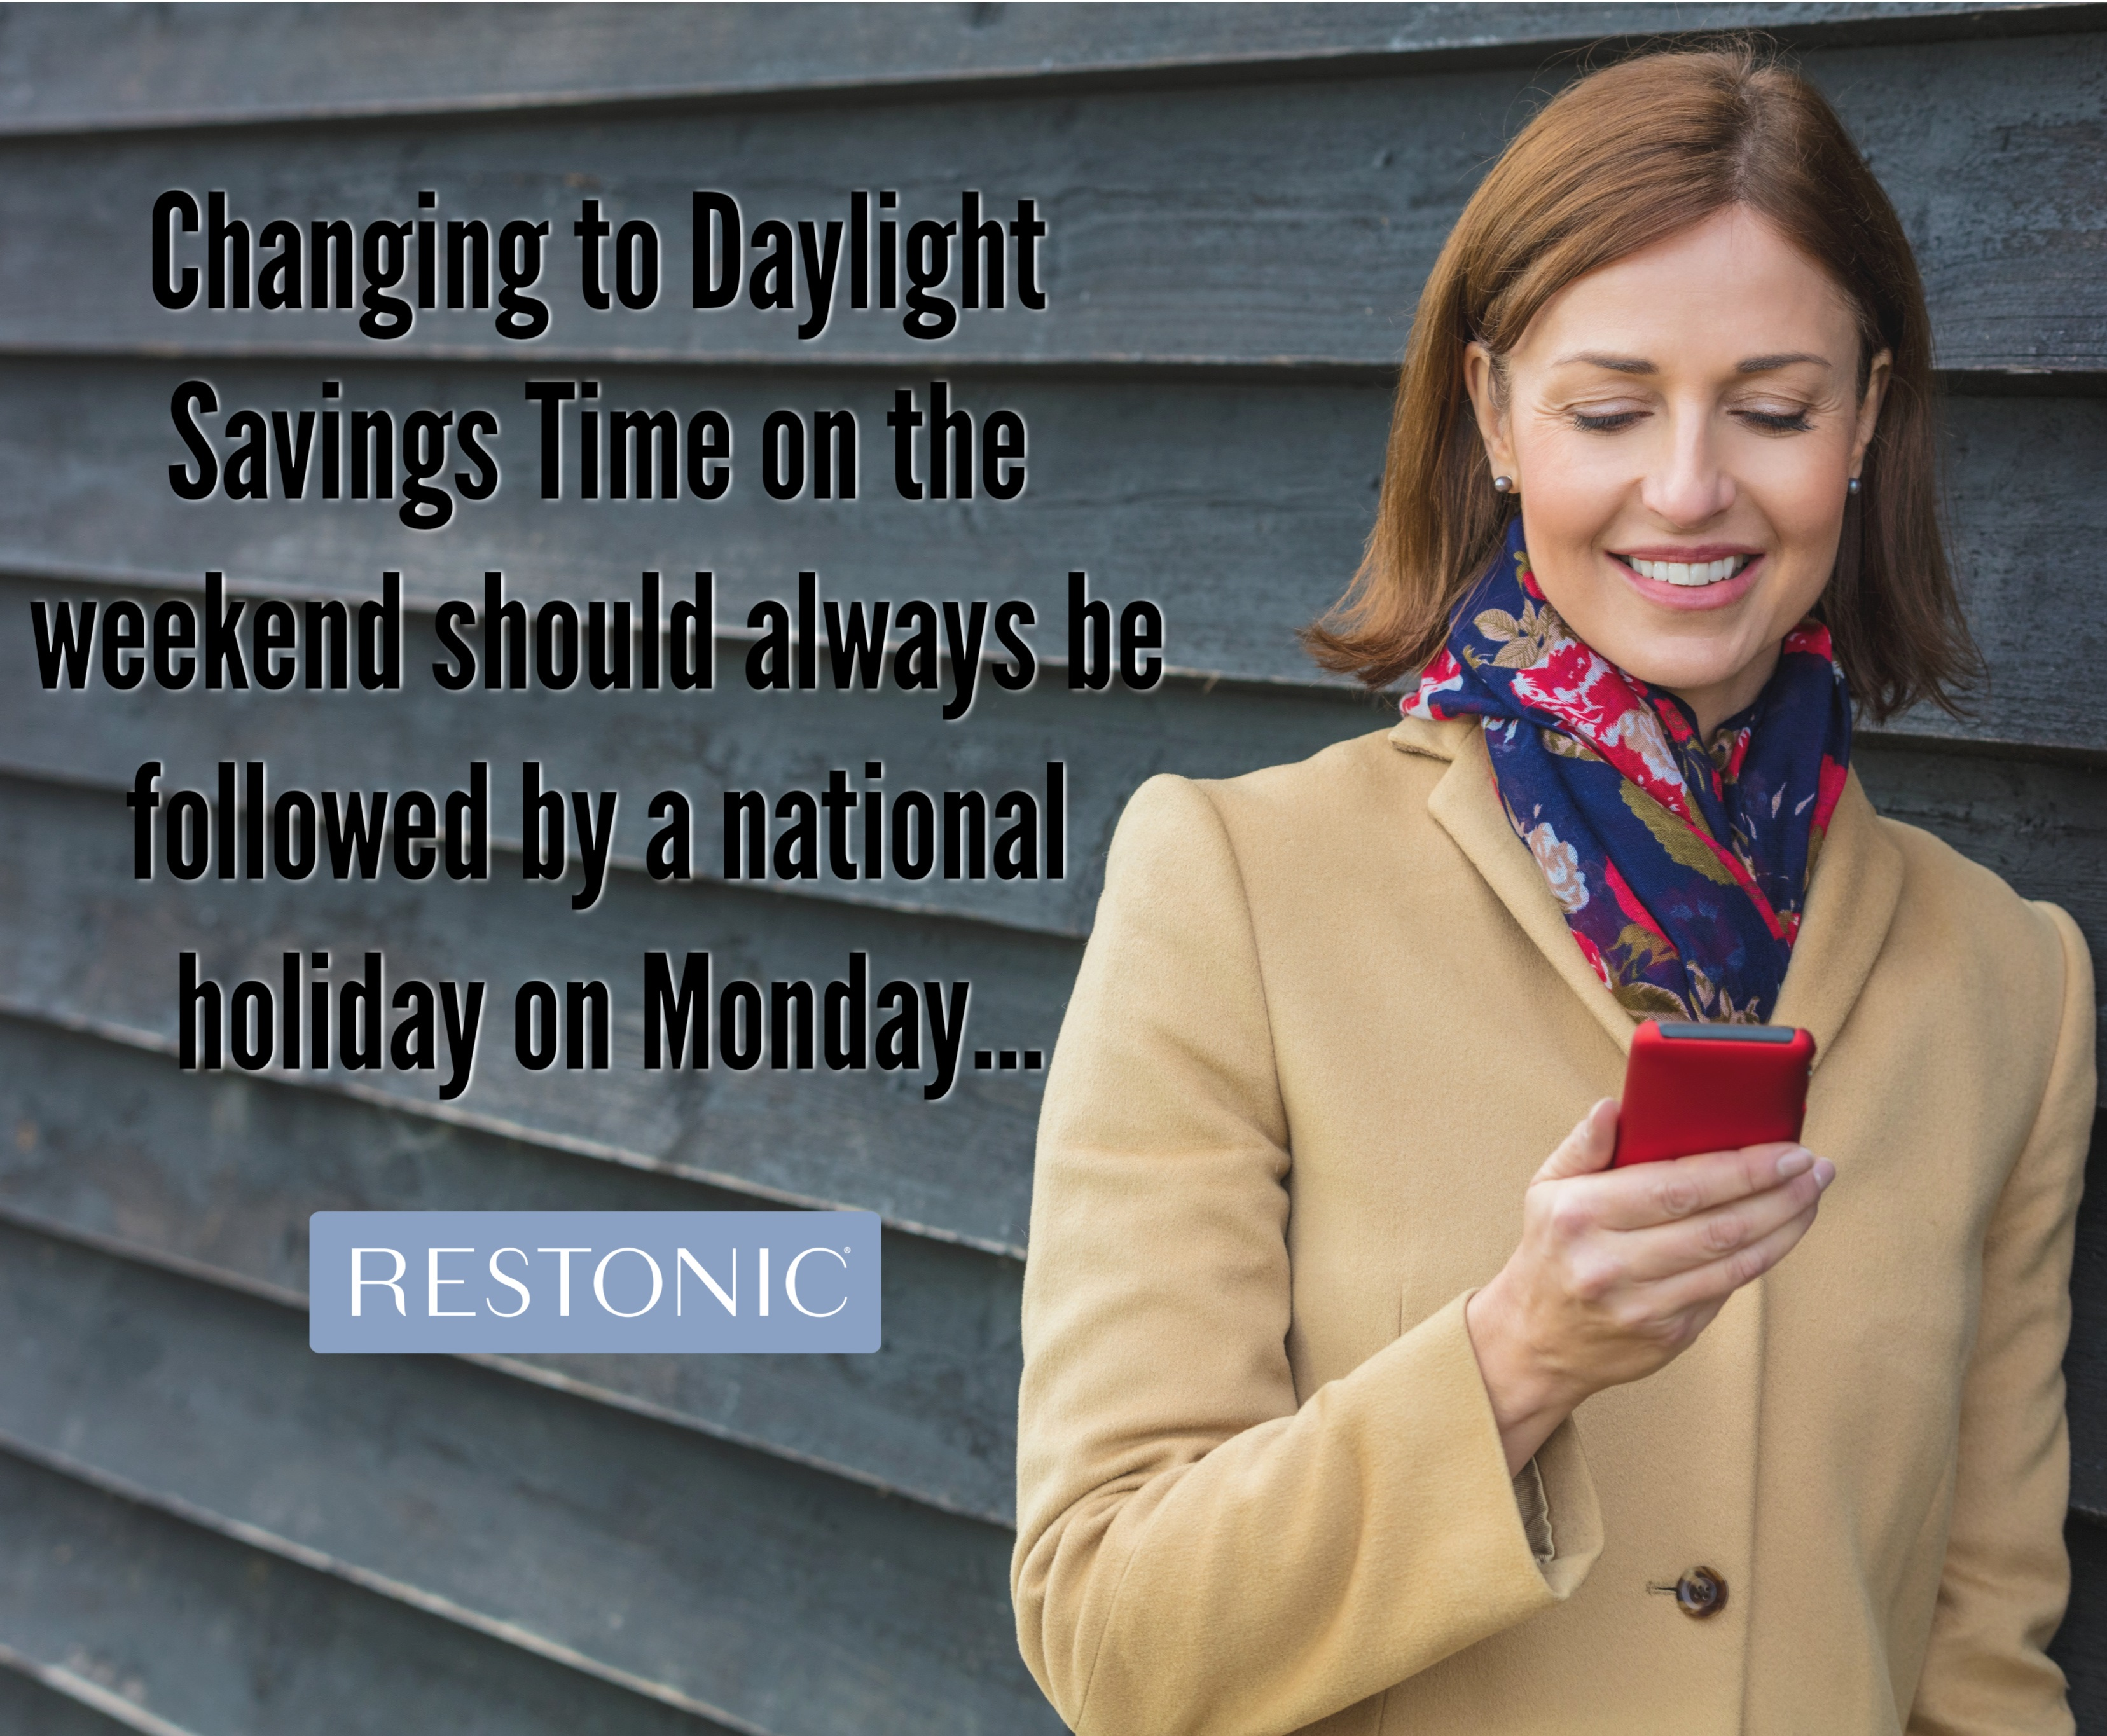 Changing to Daylight Savings Time on the weekend should always be followed by a national holiday on Monday.